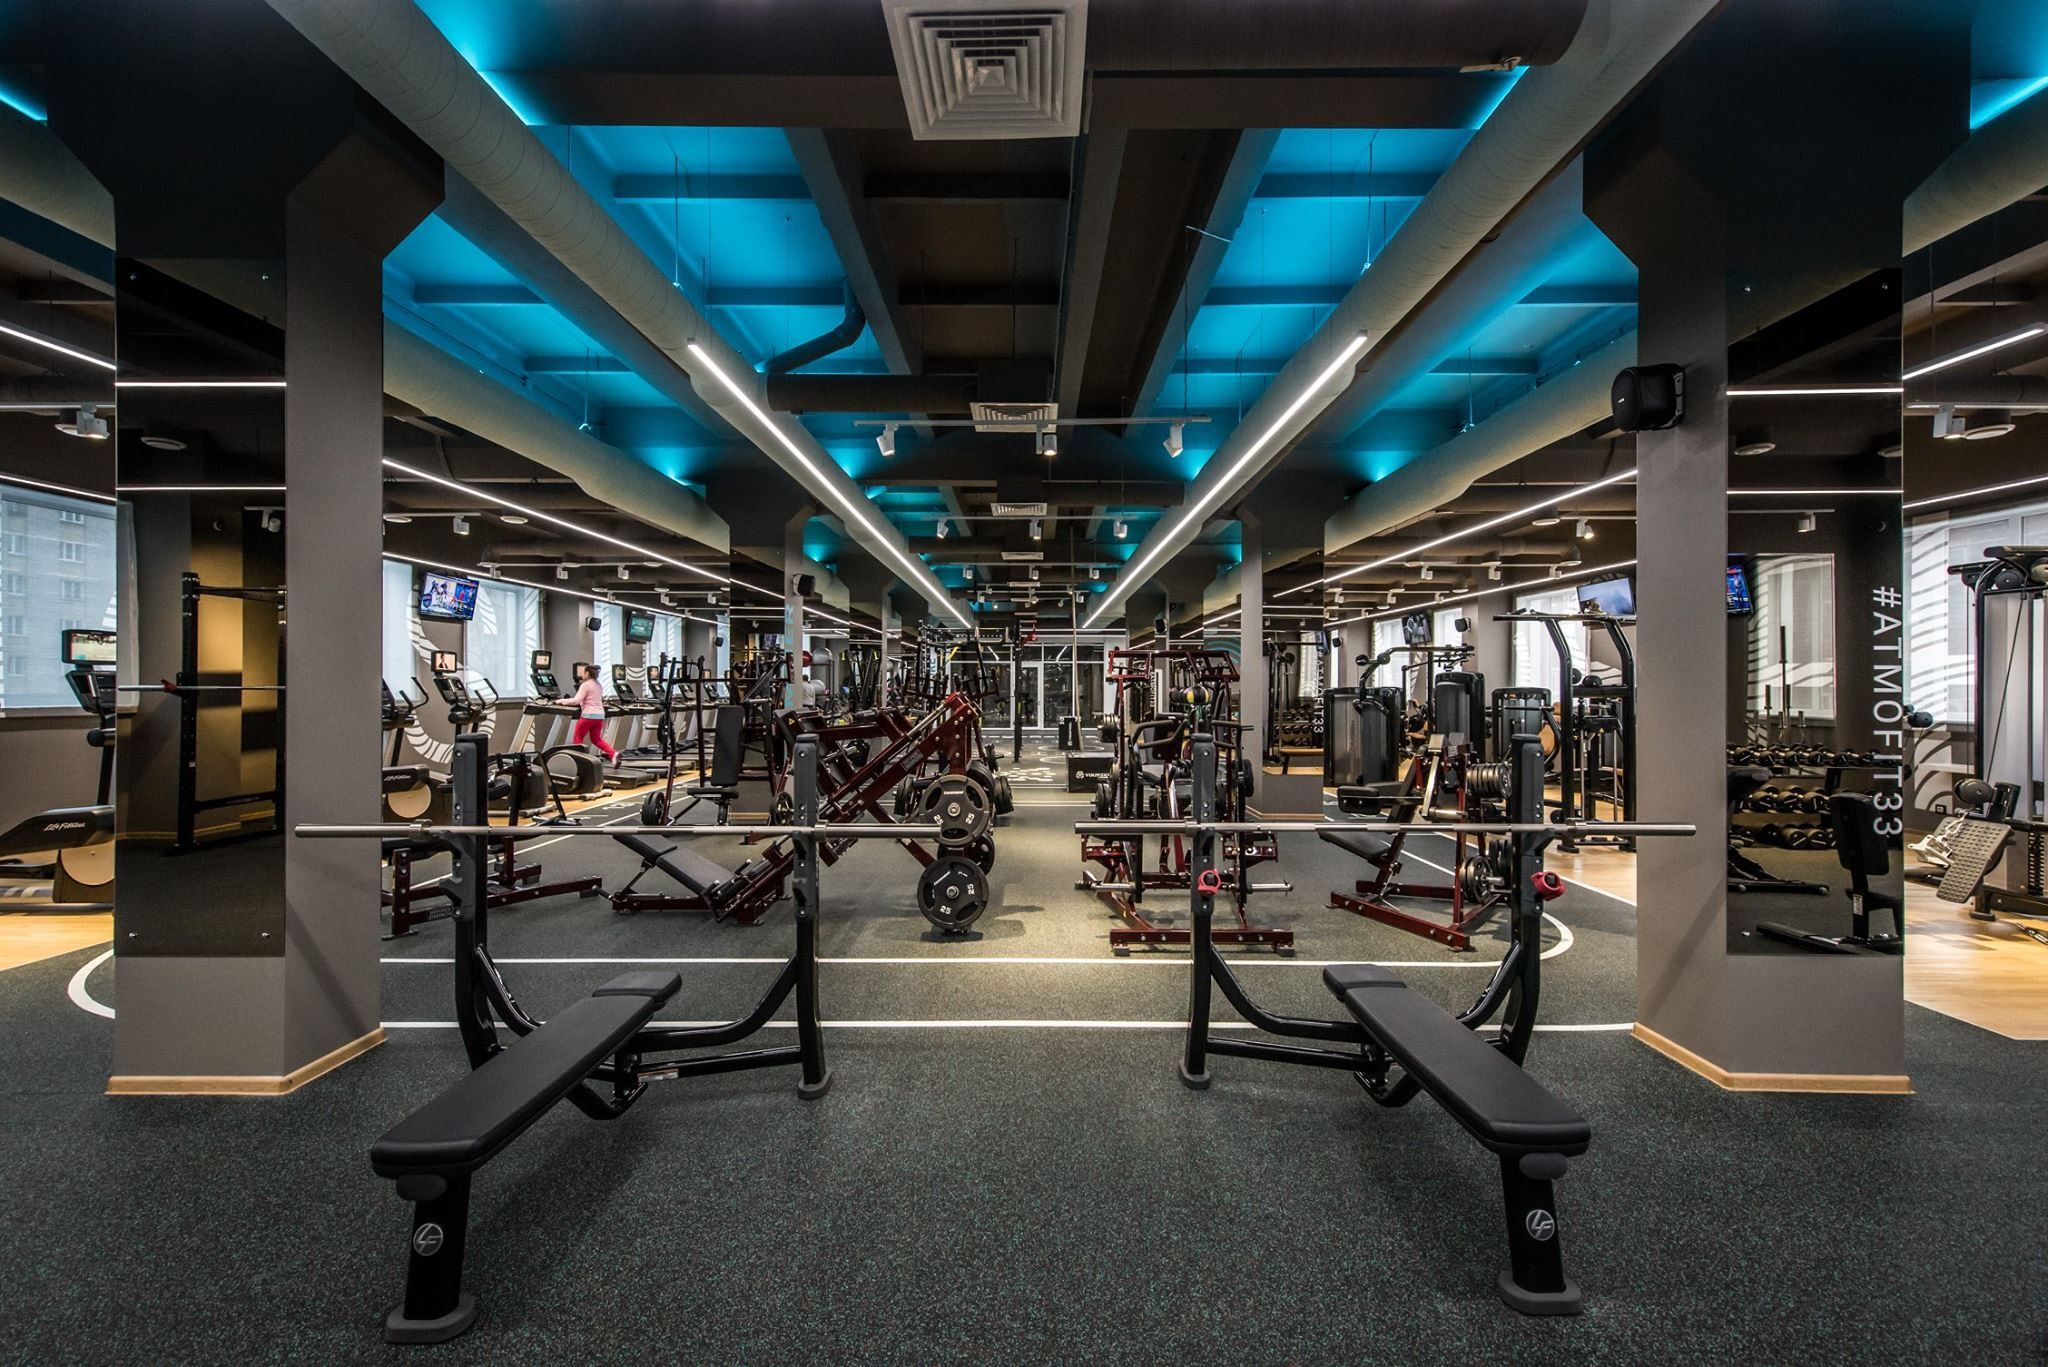 New Athens/Gym